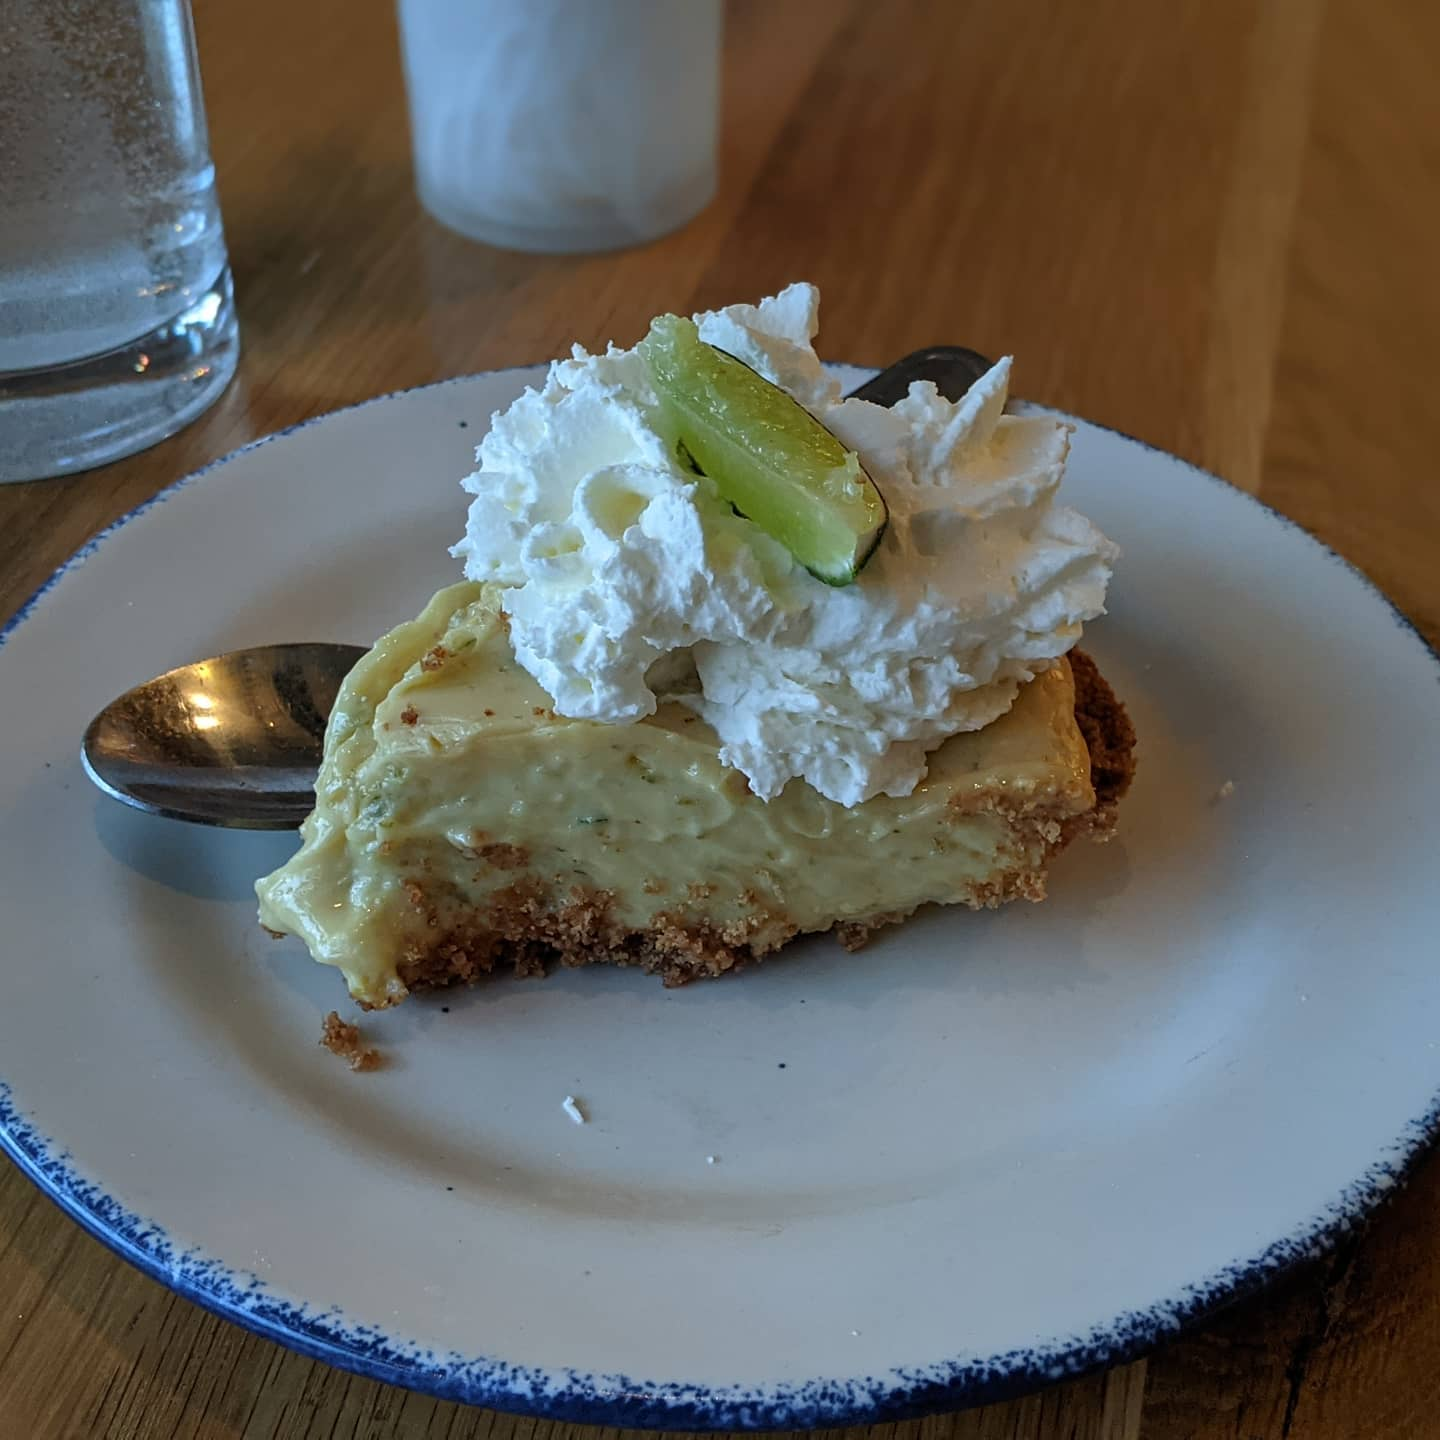 Well, I couldnt resist. Key lime pie. And yes, one of the best I've ever had #lindeyslakehouseflats #cleveland #foodporn